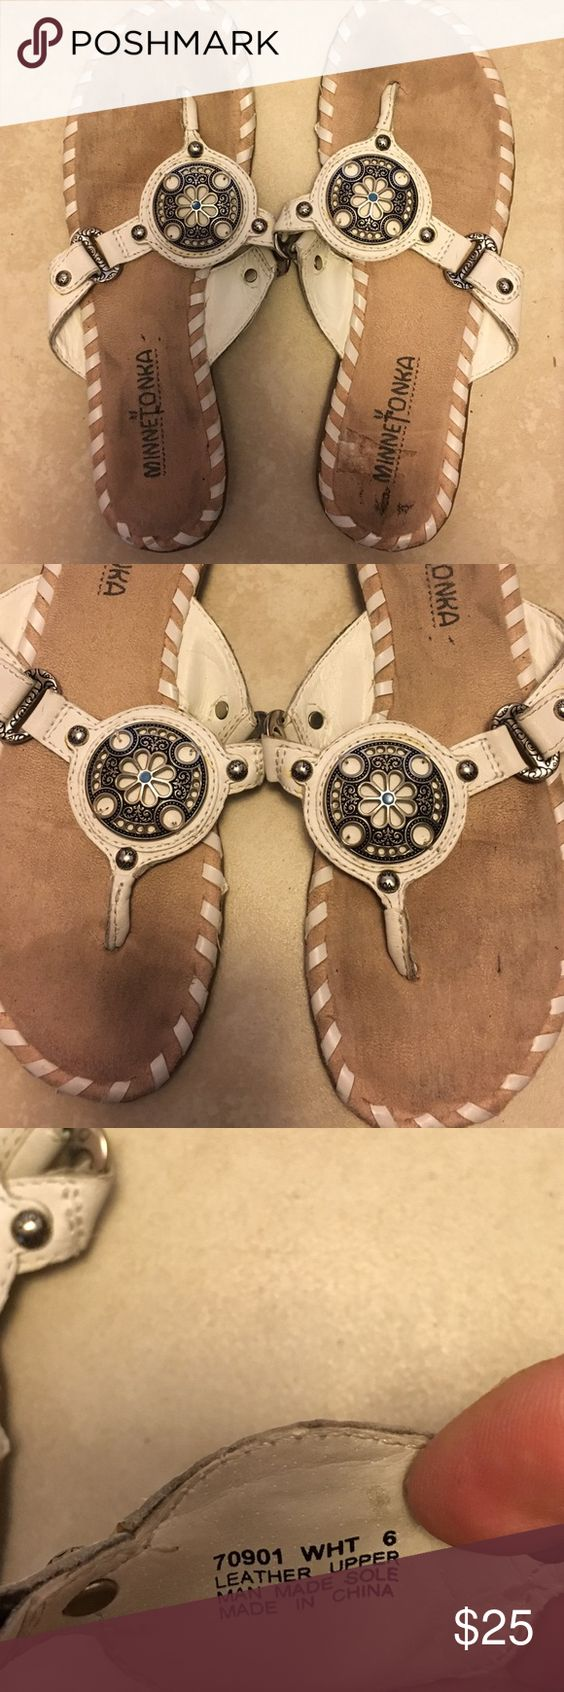 White with silver detailing Minnetonka sandals GUC Minnetonka sandals in white leather and silver detailing. Center medallion with flower has turquoise detail. Style # 70901. Suede insole rubber sole. Item will he cleaned prior to shipping. Minnetonka Shoes Sandals